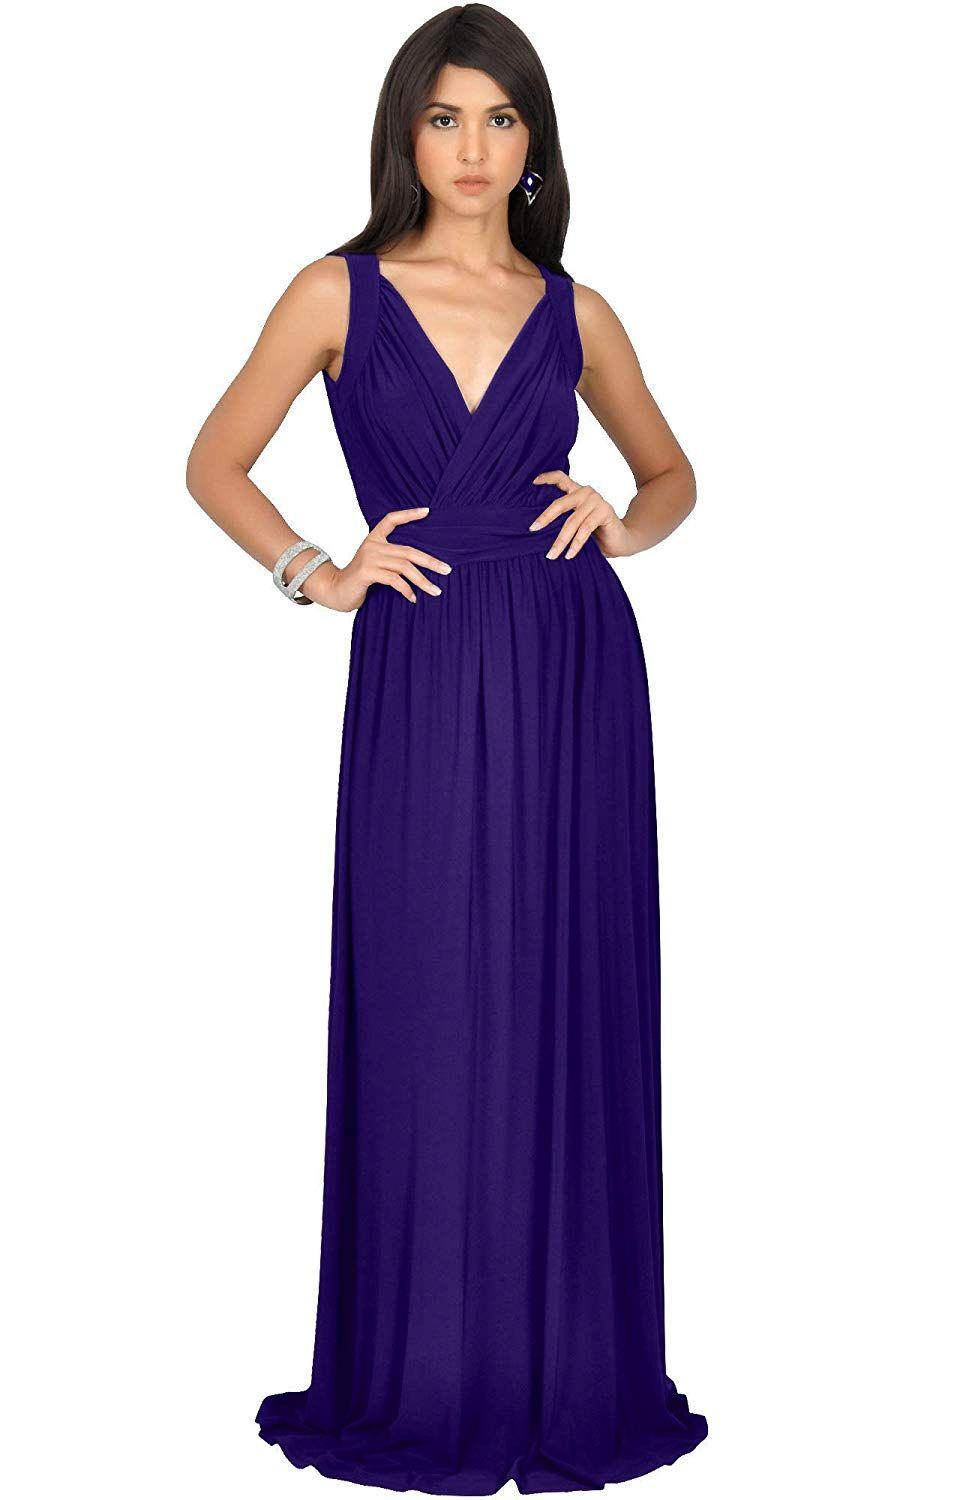 e1ccd334e4 KOH KOH Womens Long Sleeveless Flowy Bridesmaid Cocktail Evening Gown Maxi  Dress... More information can be located at the image url.